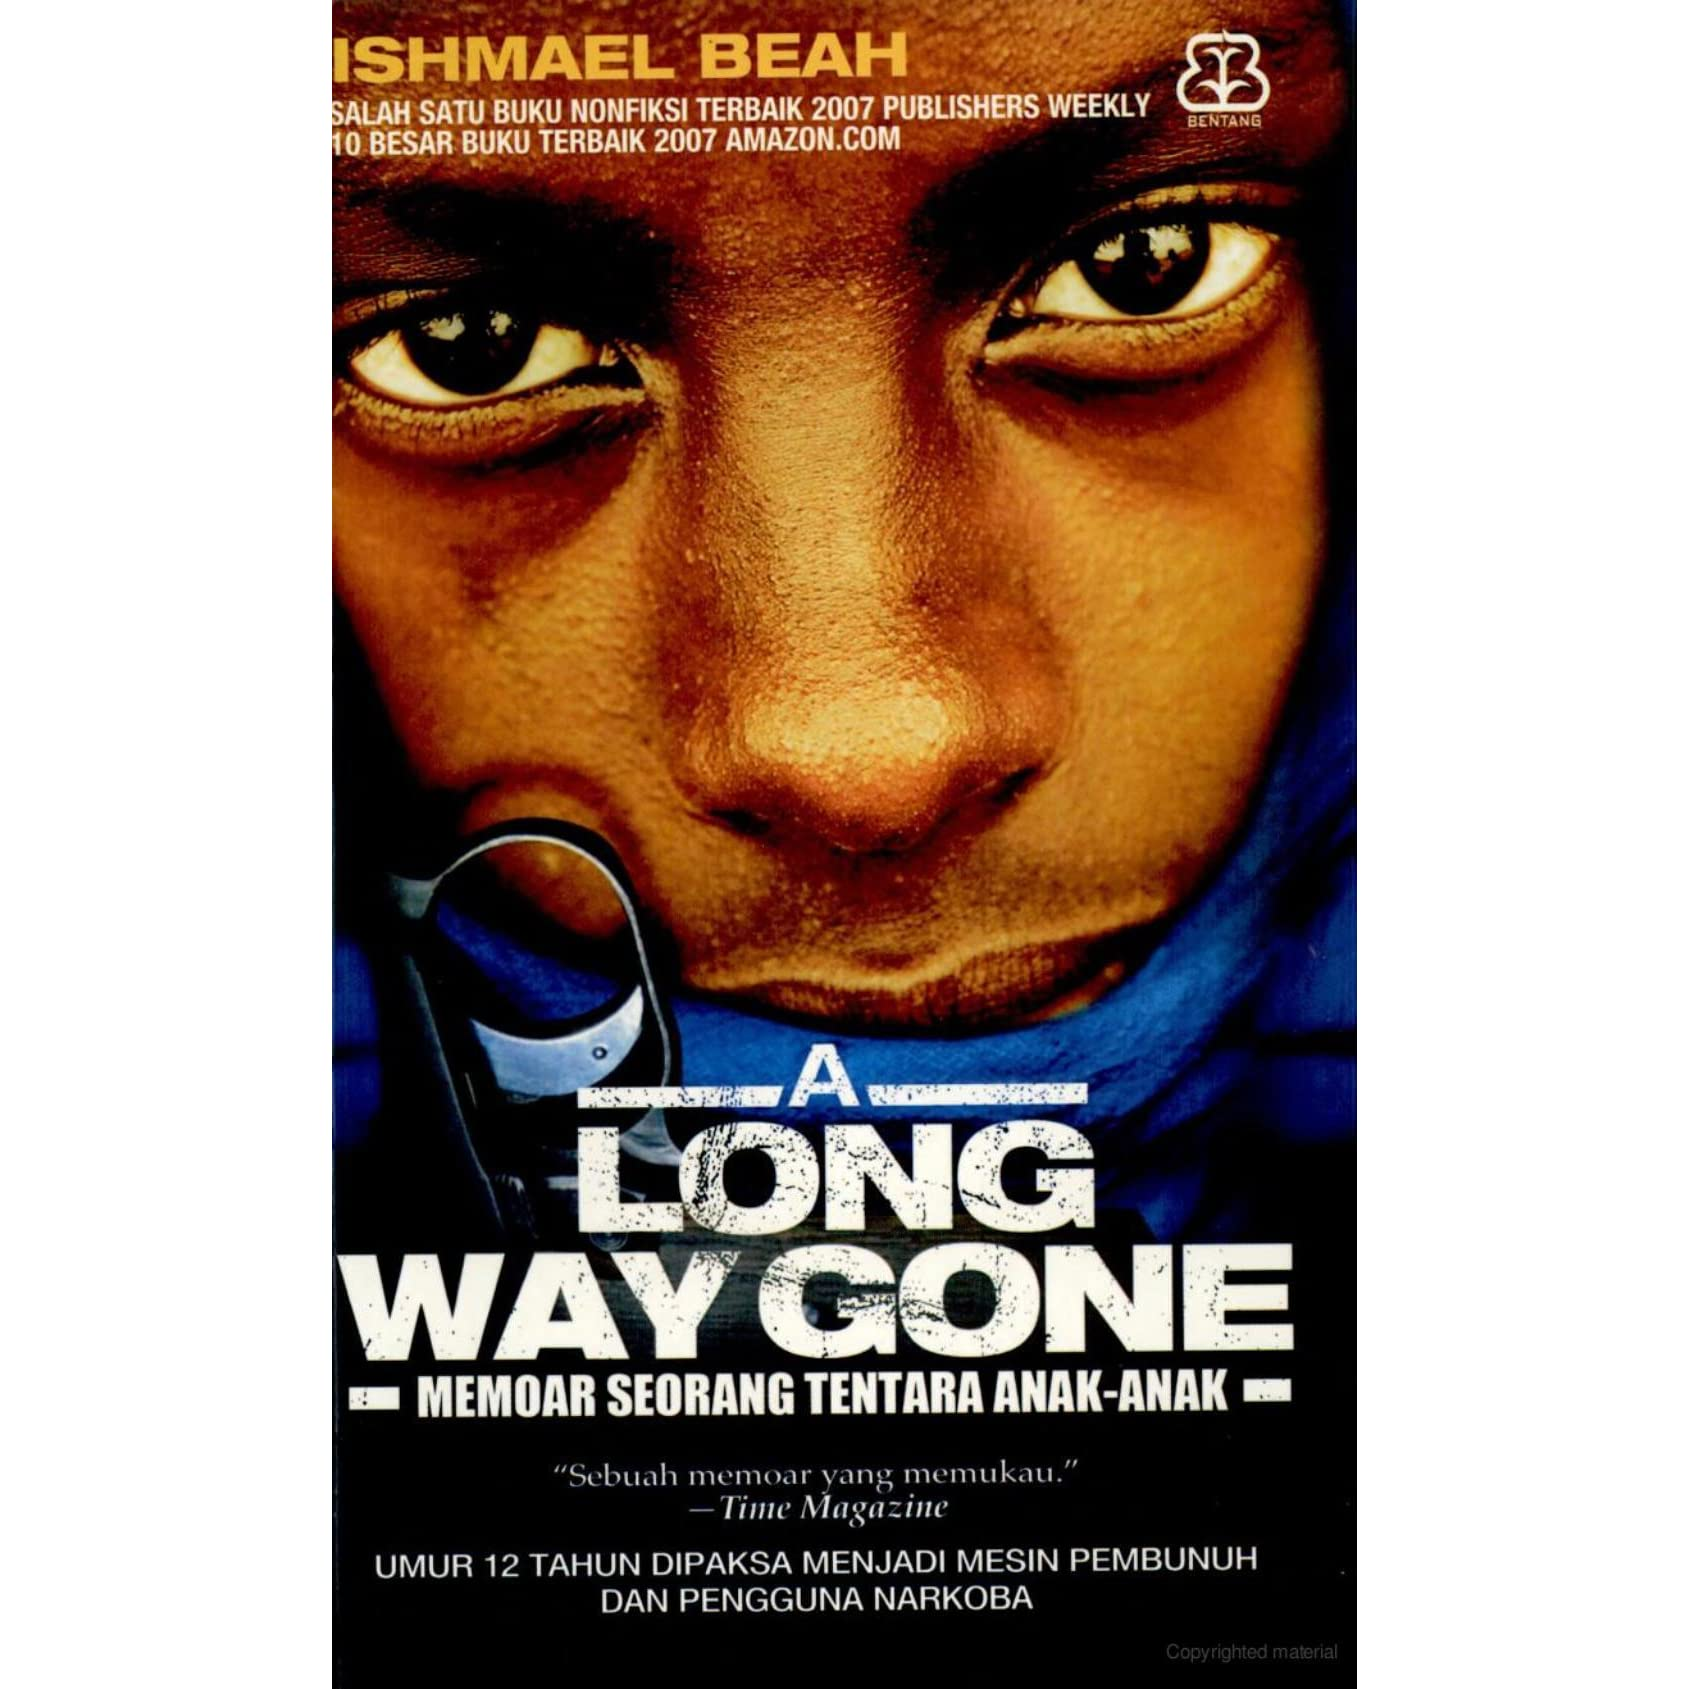 Ishmael Beah Writing Styles in A Long Way Gone: Memoirs of a Boy Soldier